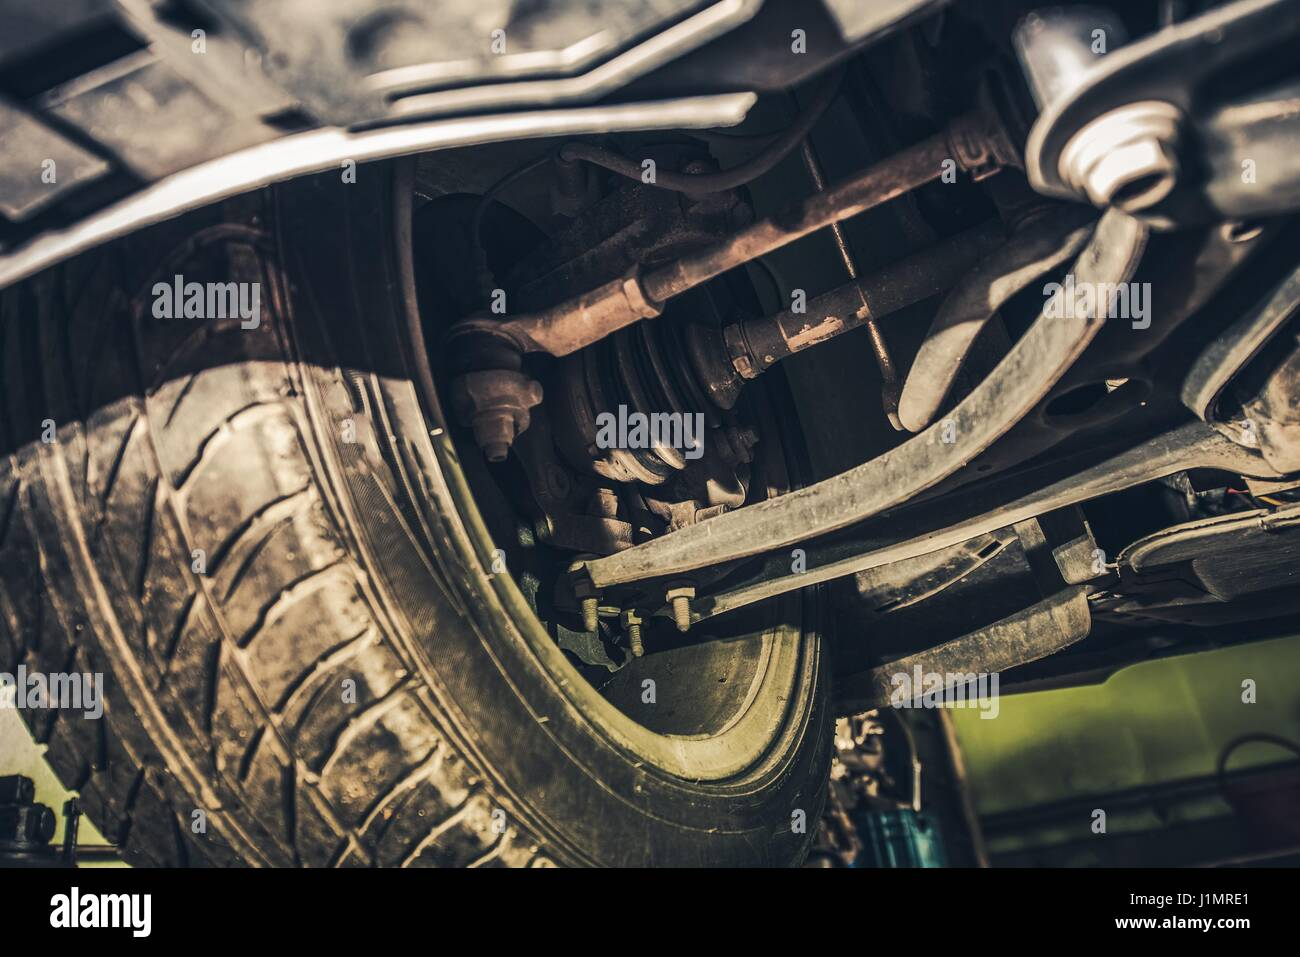 Car Steering And Suspension Maintenance In The Auto Service Front